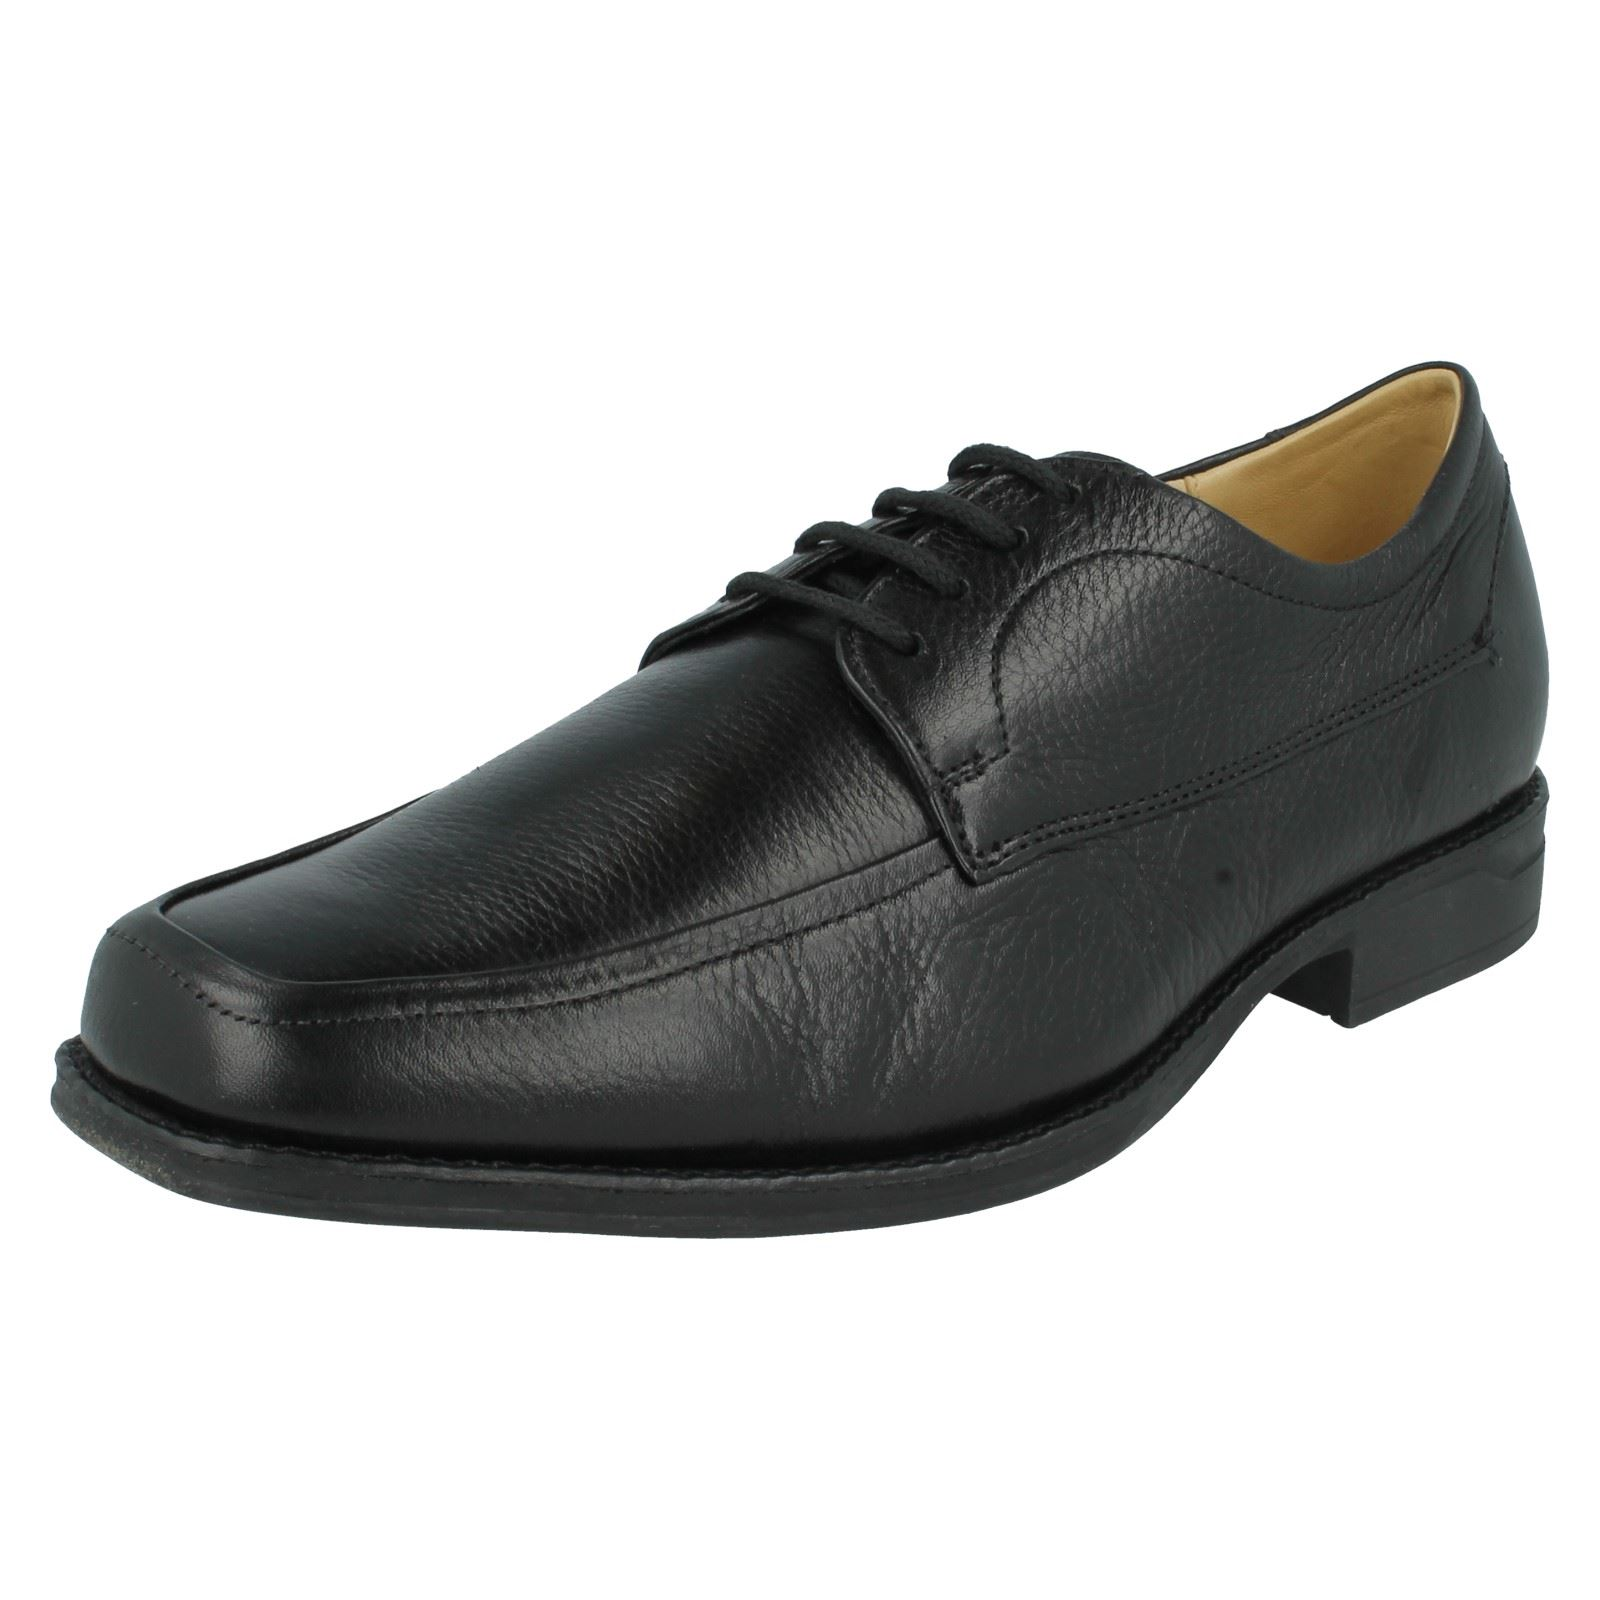 Mens Anatomic & Co Style 'Novais' Shoes The Style Co ~K 6f71f0